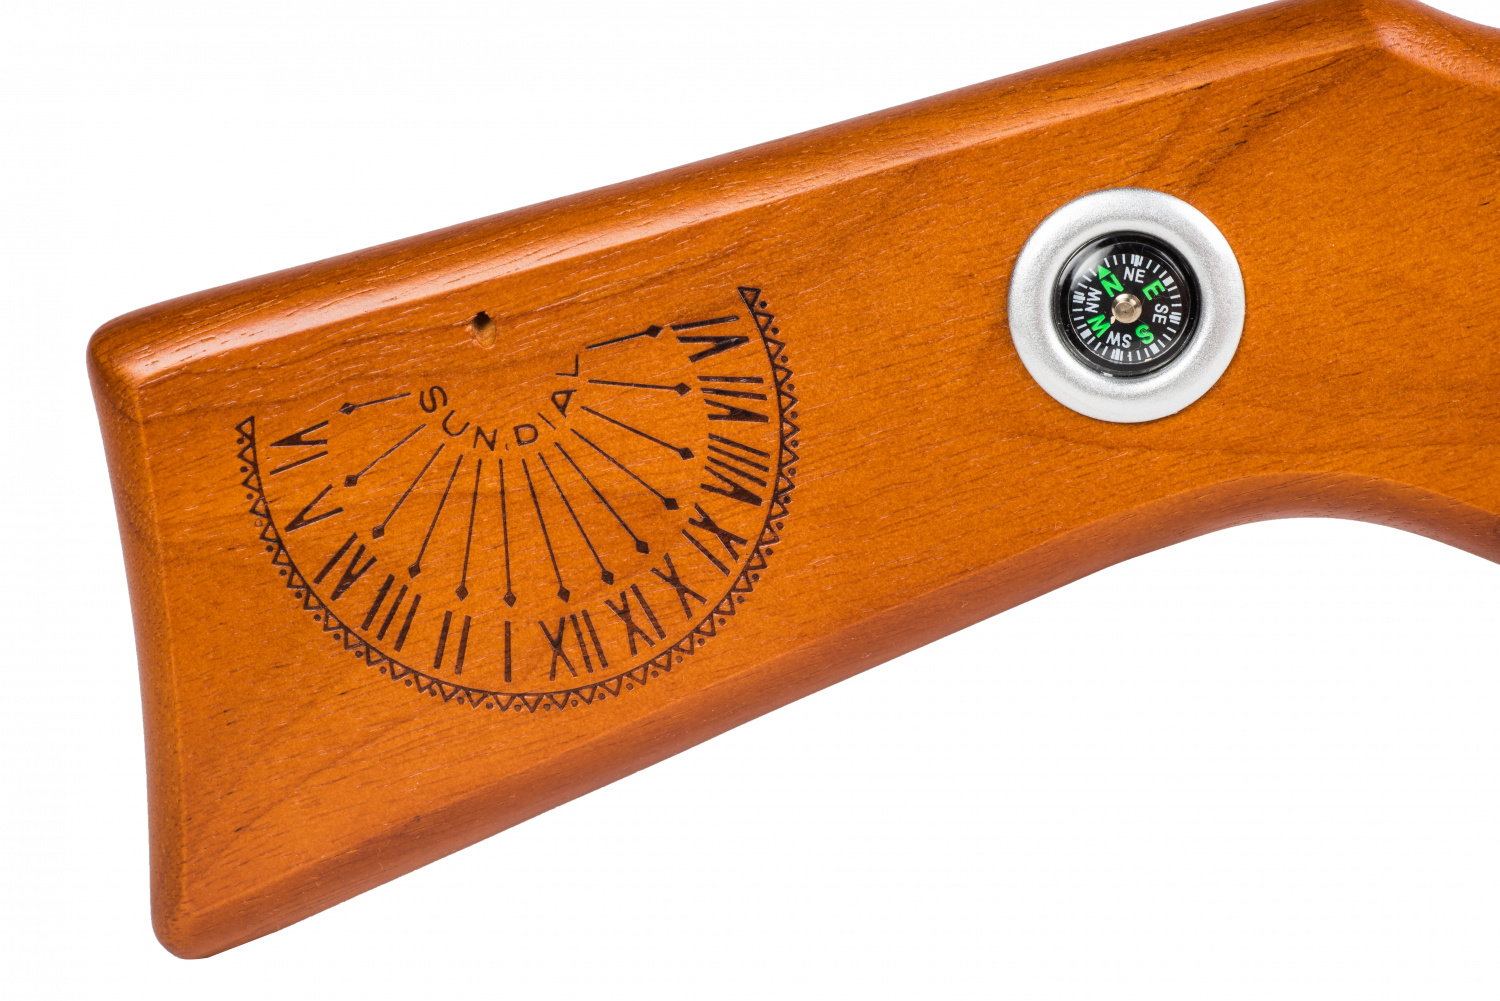 Fun fact: the compass and sundial that make this iconic model stand out had to be affixed to the left side of the original Red Ryder stock for the film, since Peter Billingsly is left-handed.